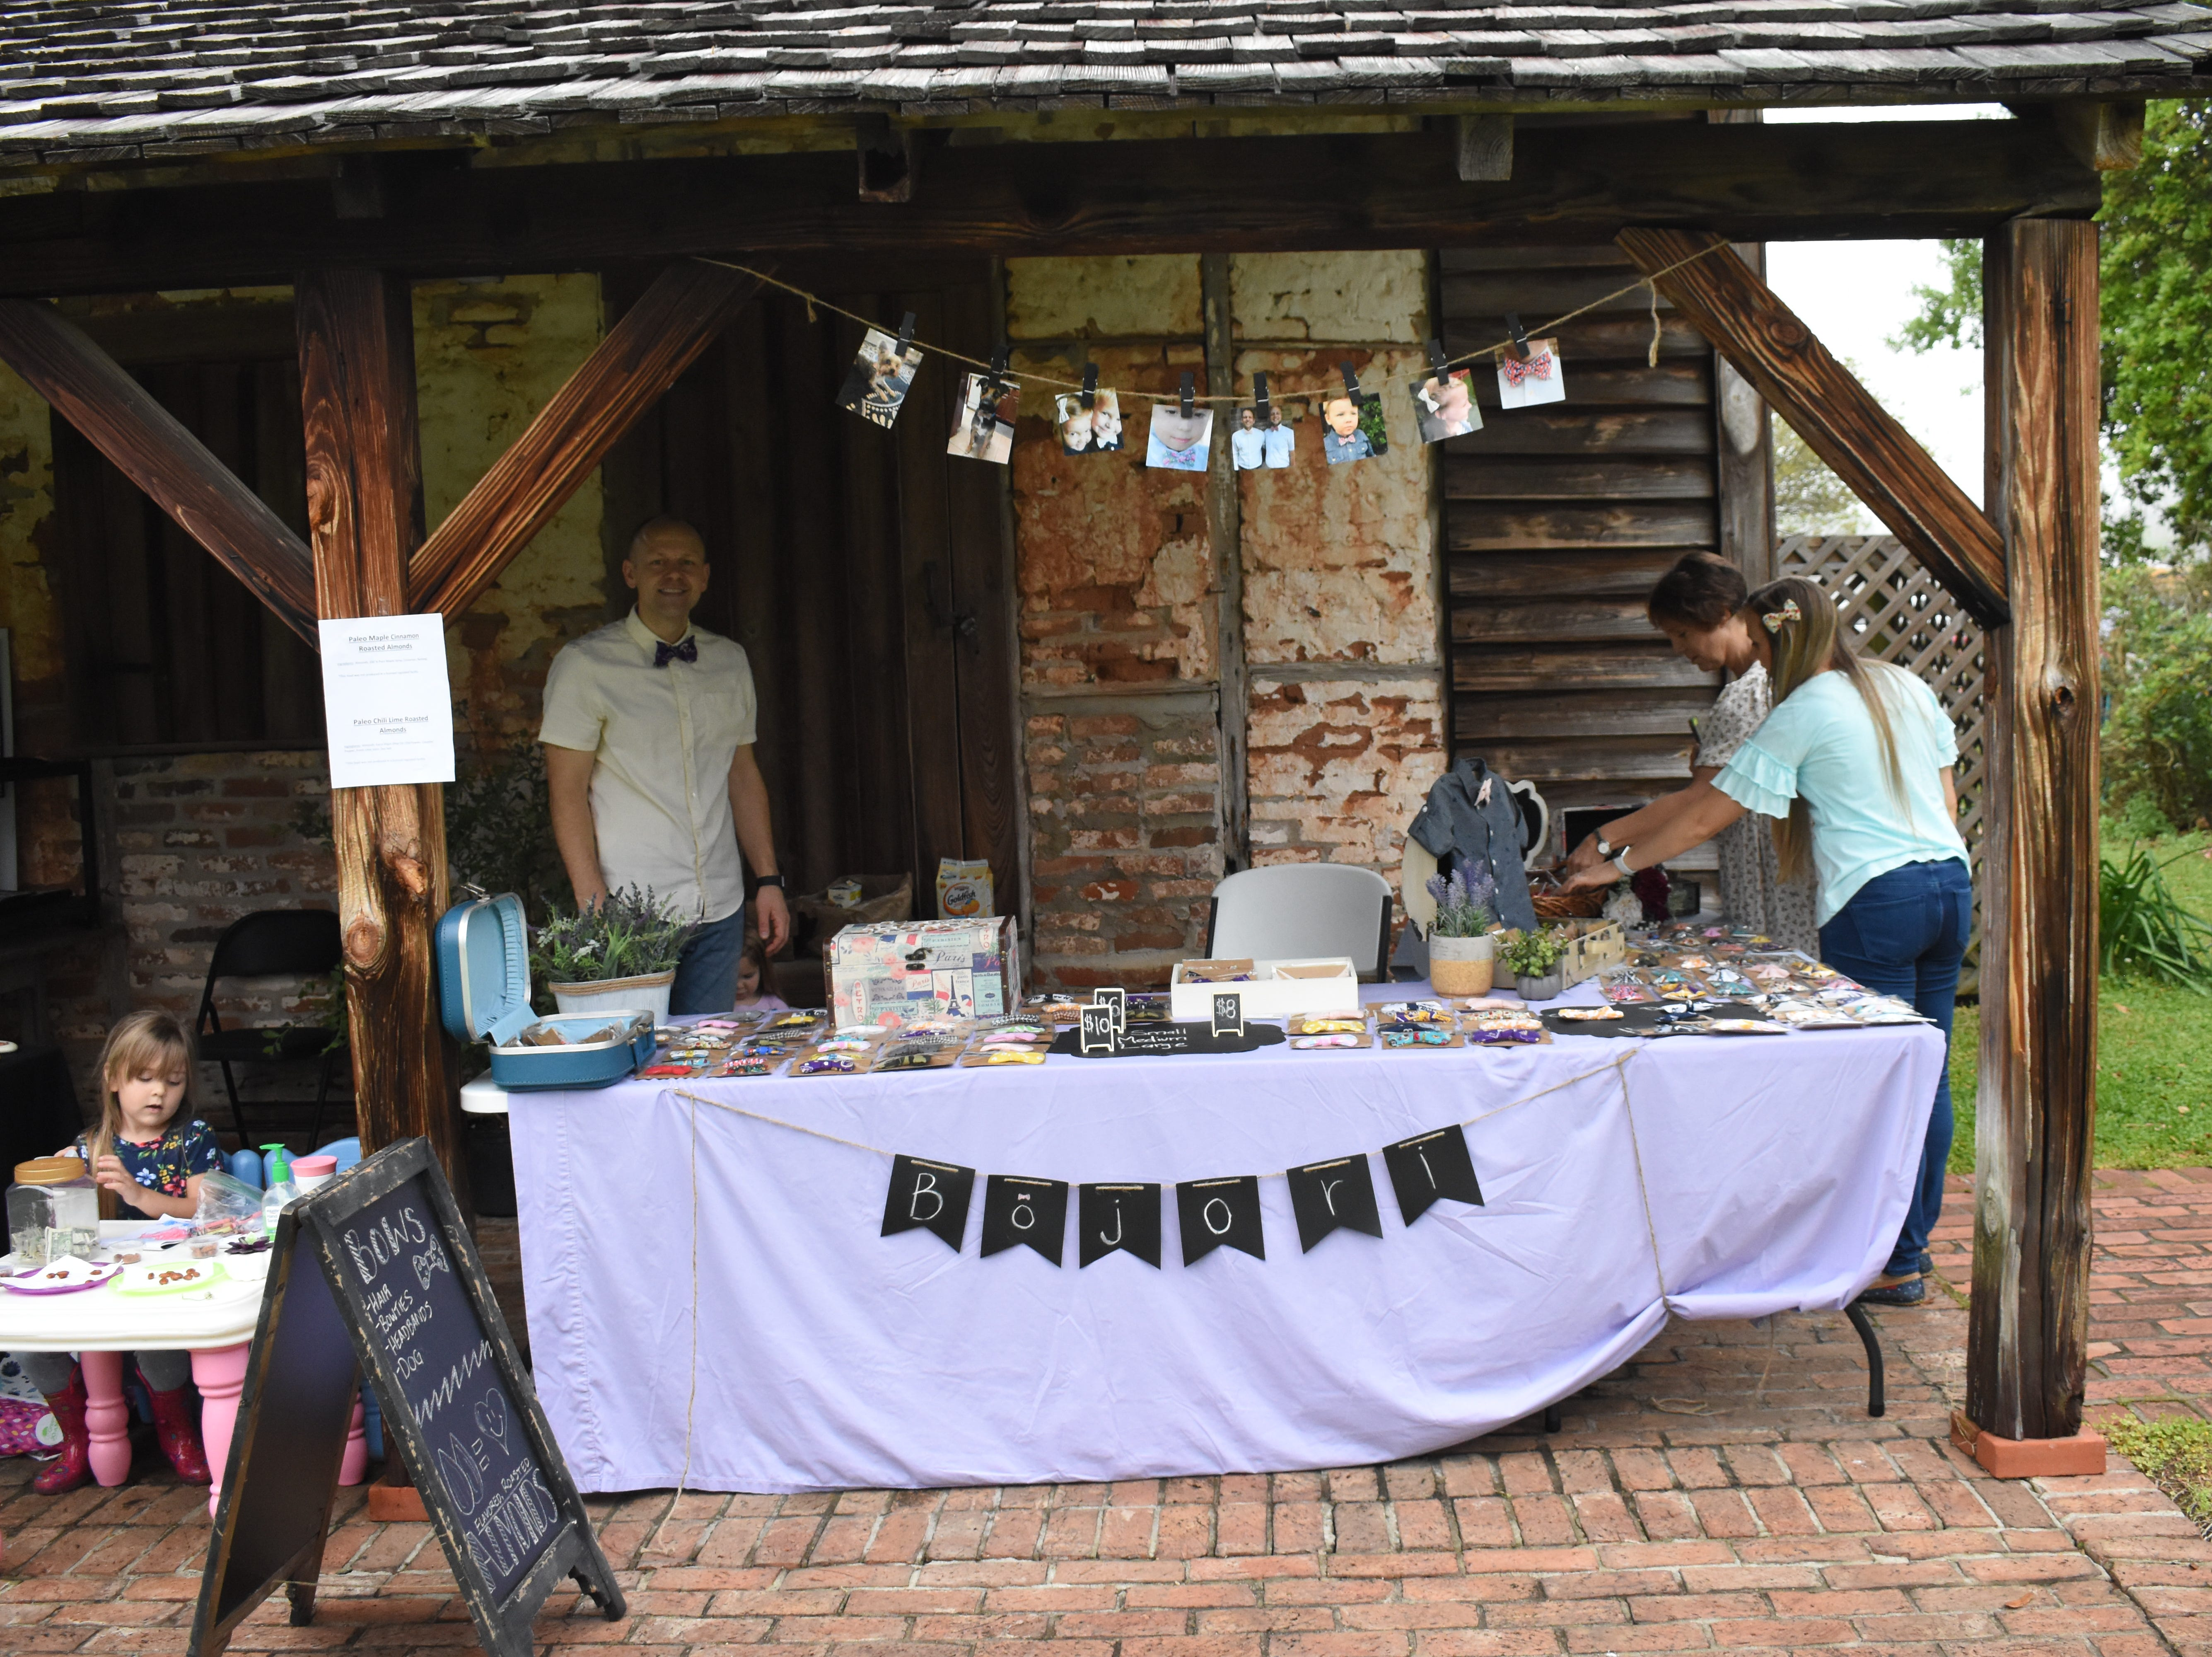 Kent Plantation House held their annual Spring Herb Day along with a yard sale, Saturday, April 6, 2019. Besides herbs and flowers, vendors were selling various handmade arts and crafts.